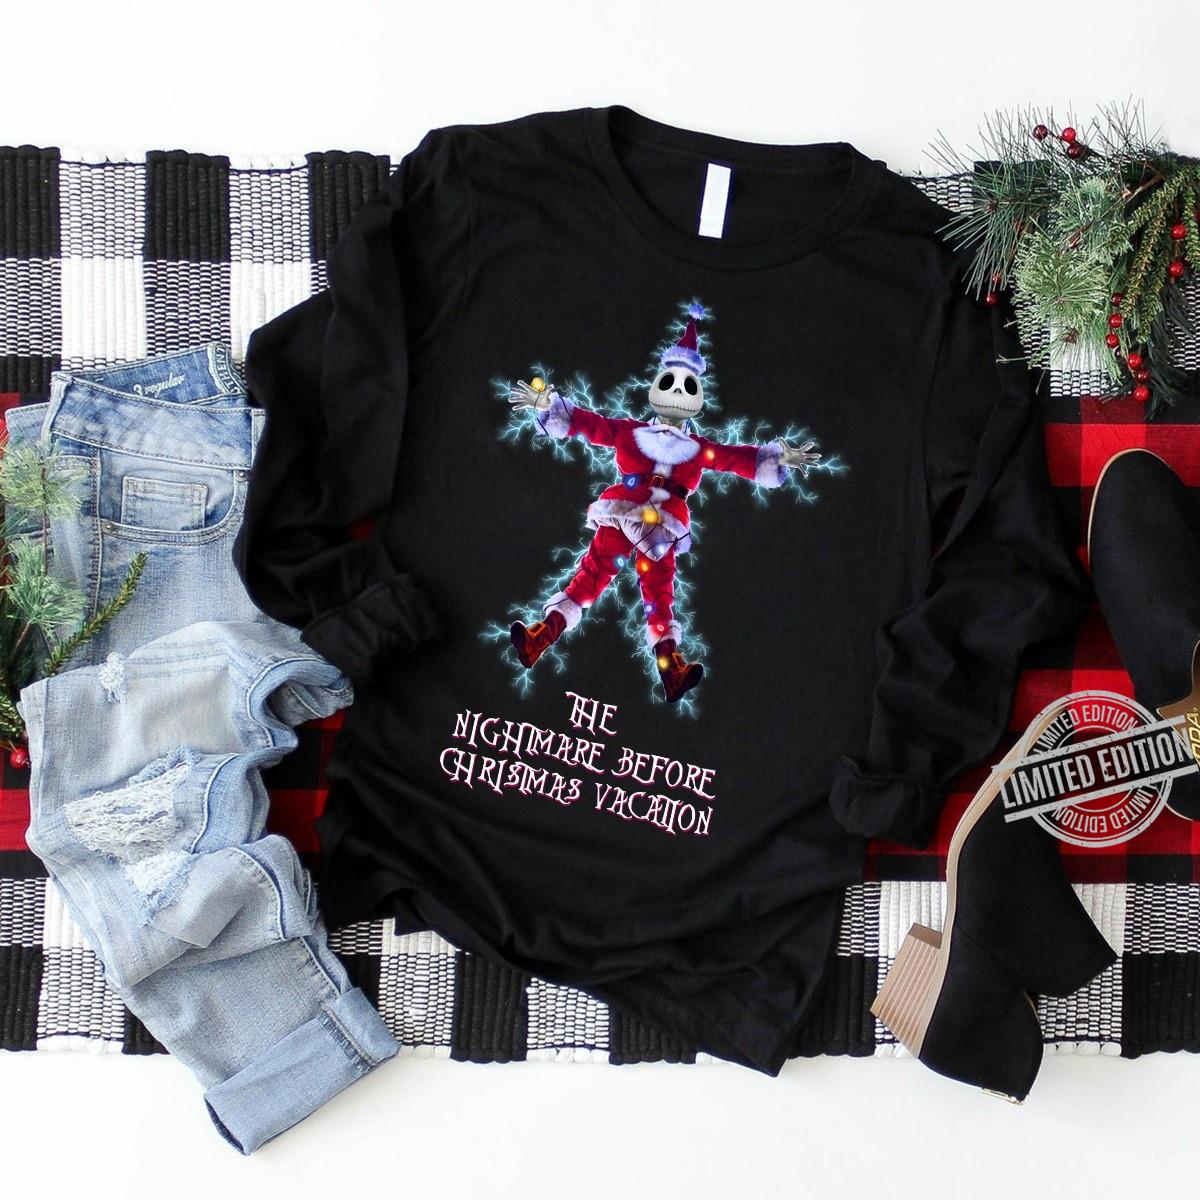 The Nightmare Before Christmas Vacation Shirt